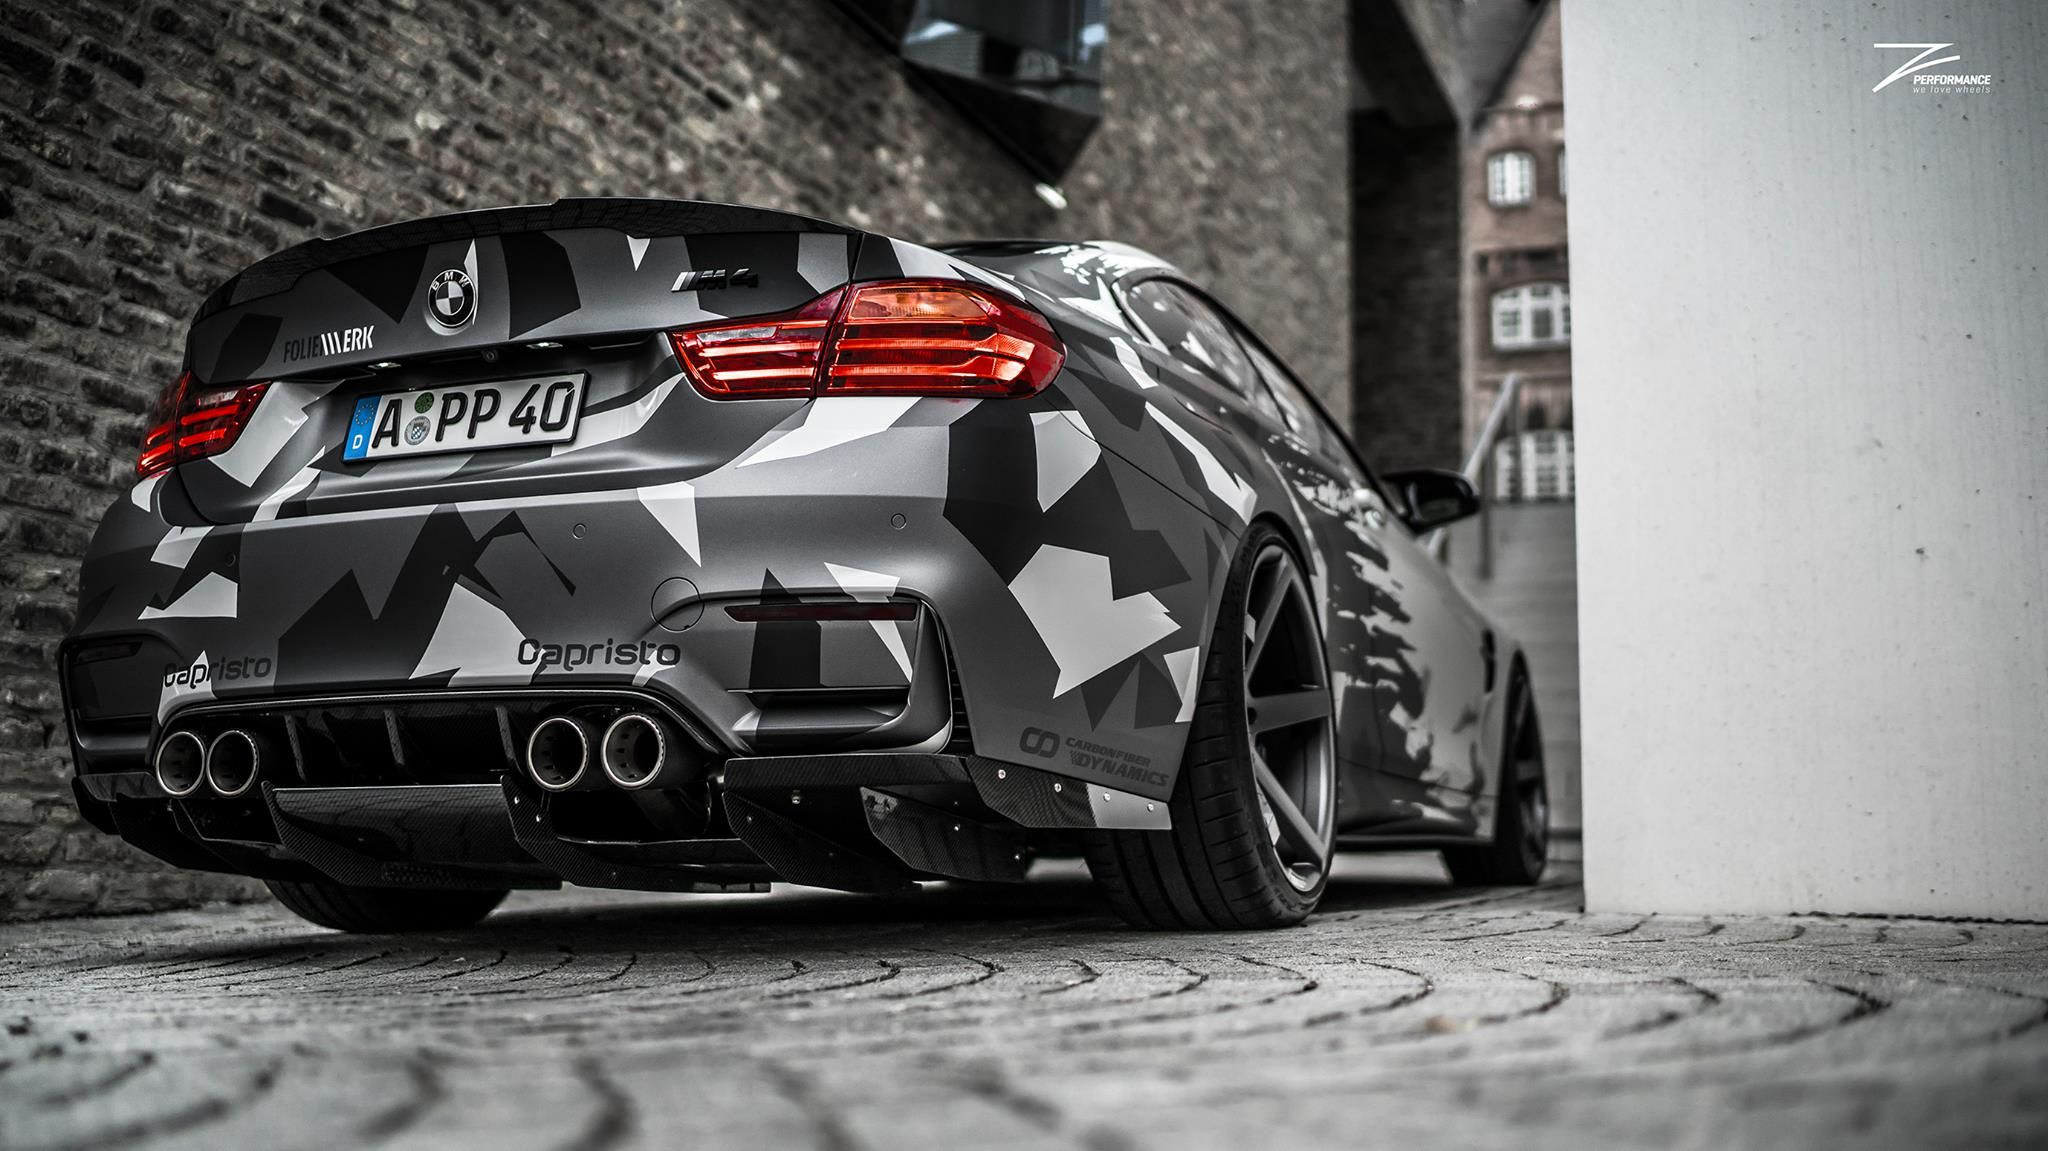 #BMW #F82 #M4 #Coupe #Individual #xDrive #MPerformance #SheerDrivingPleasure #ZPerformance #Badass #Hot #Burn #Provocative #Eyes #Sexy #Live #Life #Love #Follow #Your #Heart #BMWLife